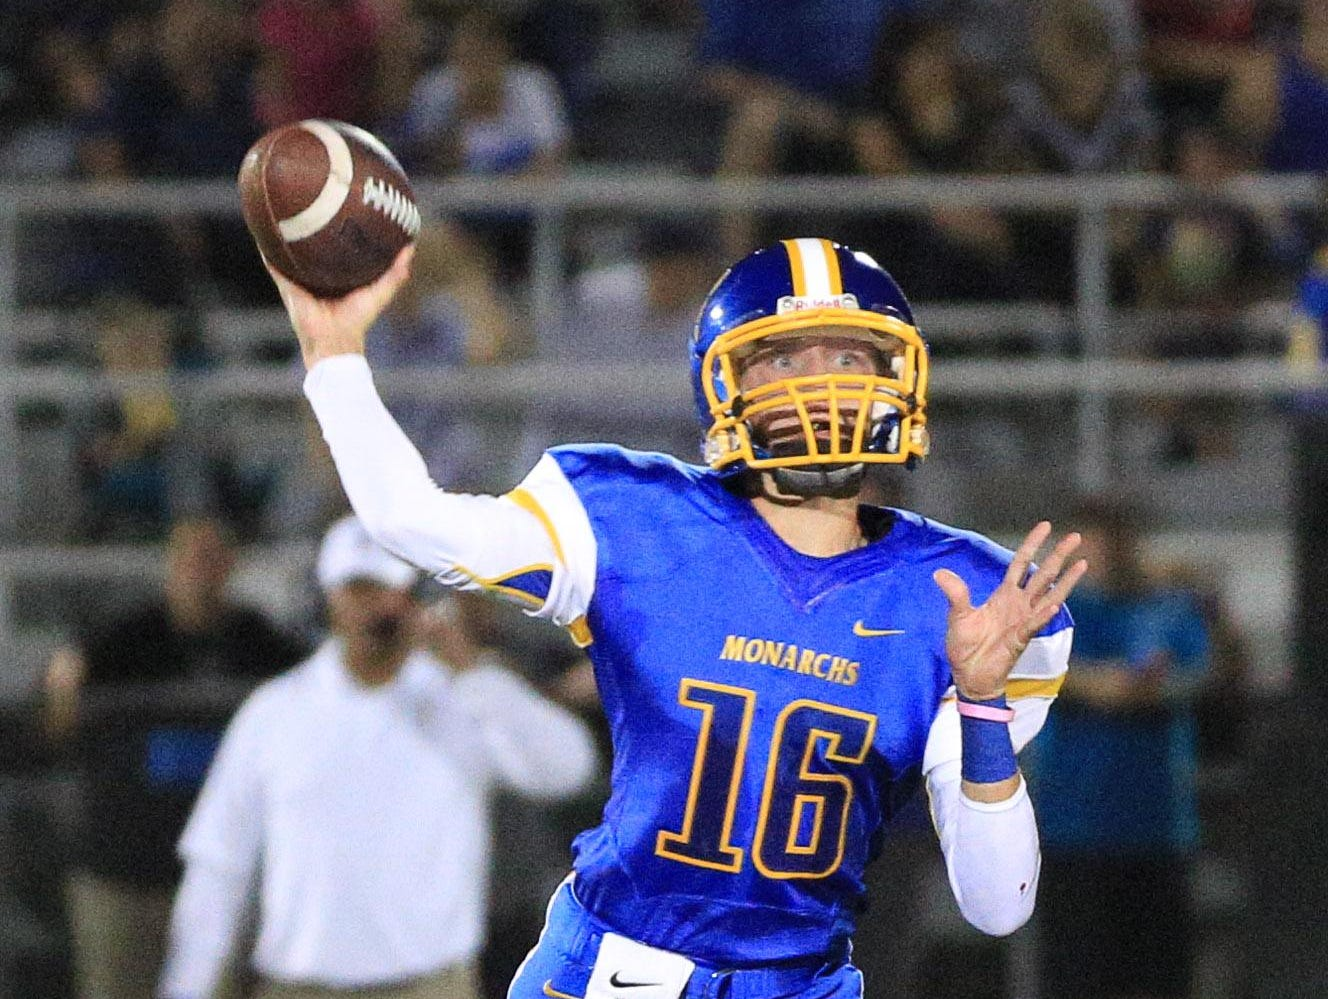 Freshman quarterback Alec Trujillo led Exeter to a 41-24 win over Mission Oak on Friday.